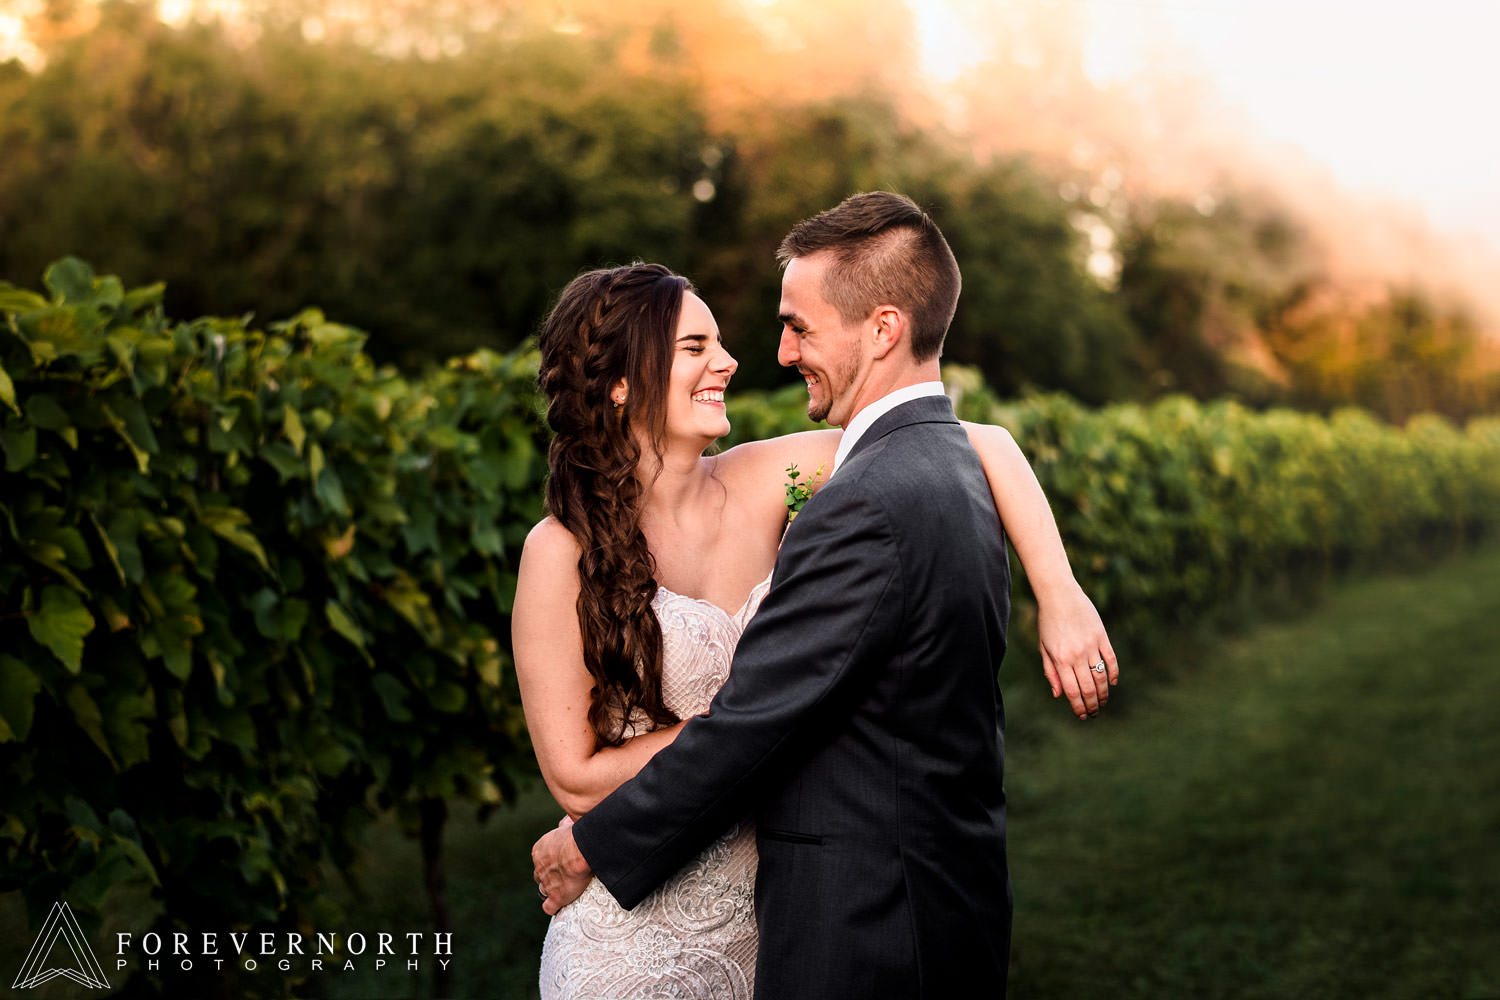 Mendyk-Valenzano-Family-Winery-NJ-Wedding-Photographer-01.JPG